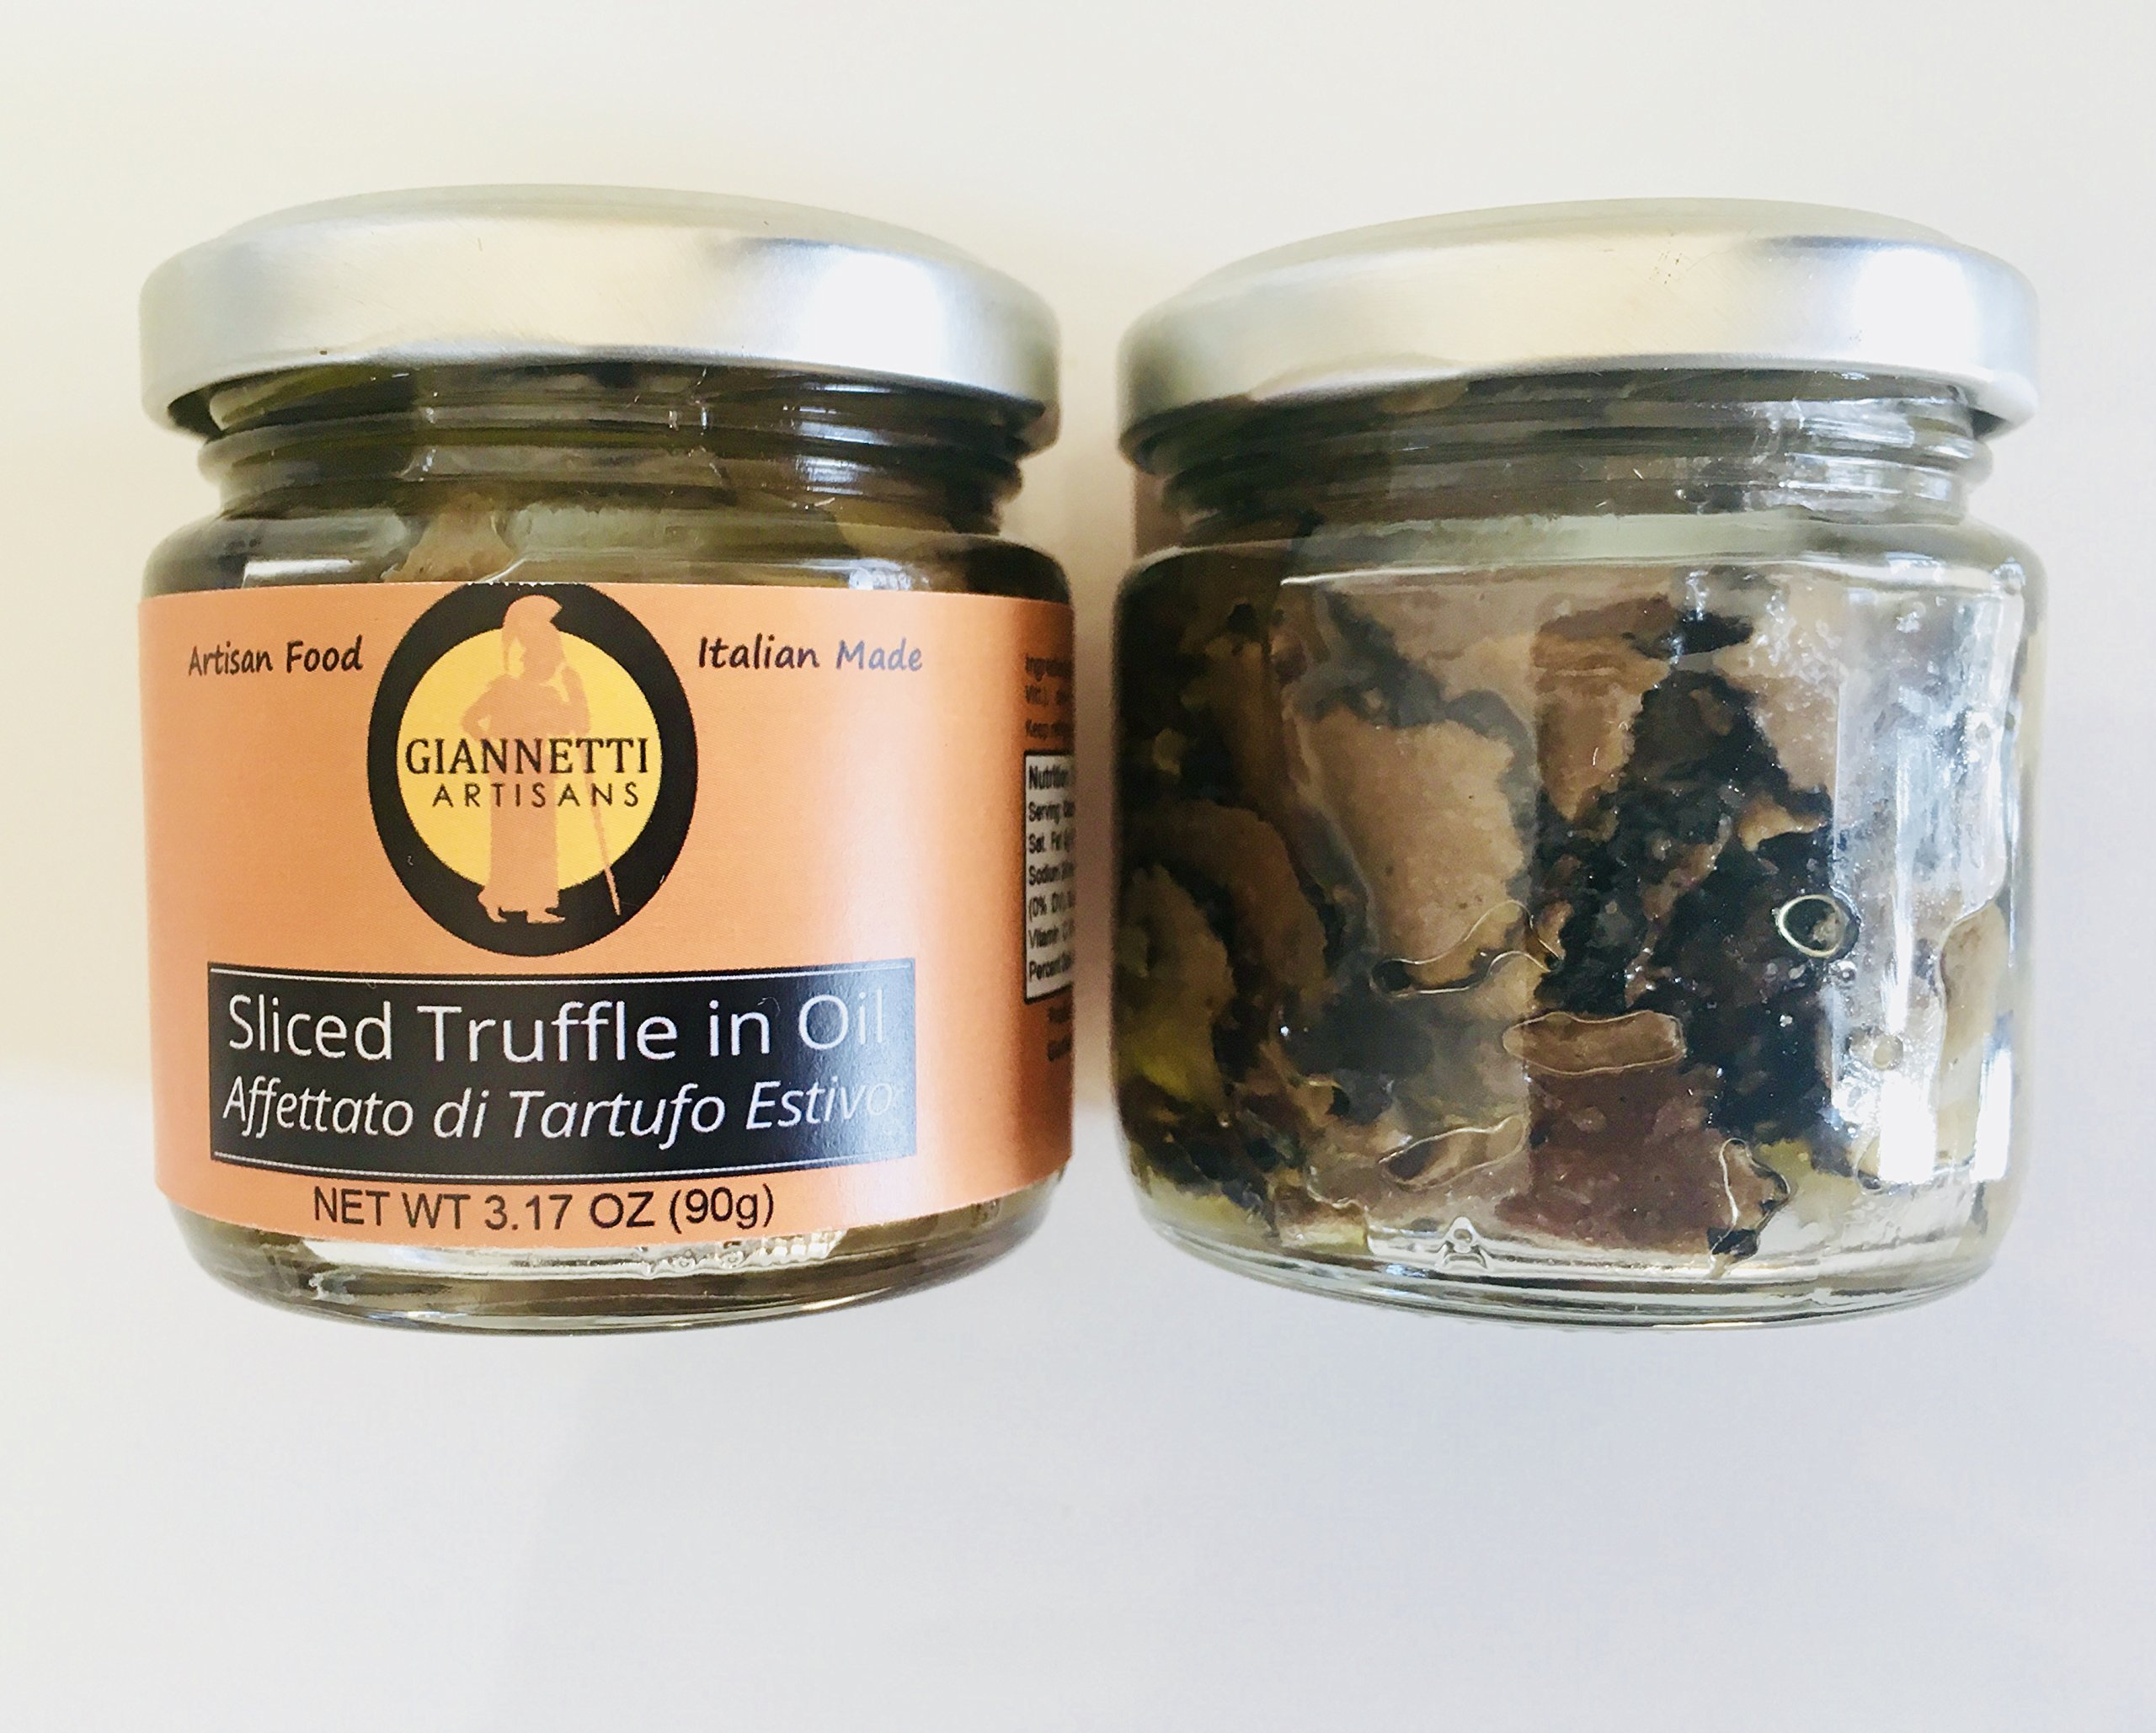 Giannetti Artisans Exclusive Sliced Black Truffles with EVOO & Imported from Tuscany, Italy - 3.17 Oz (Per Jar) by Giannetti Artisans